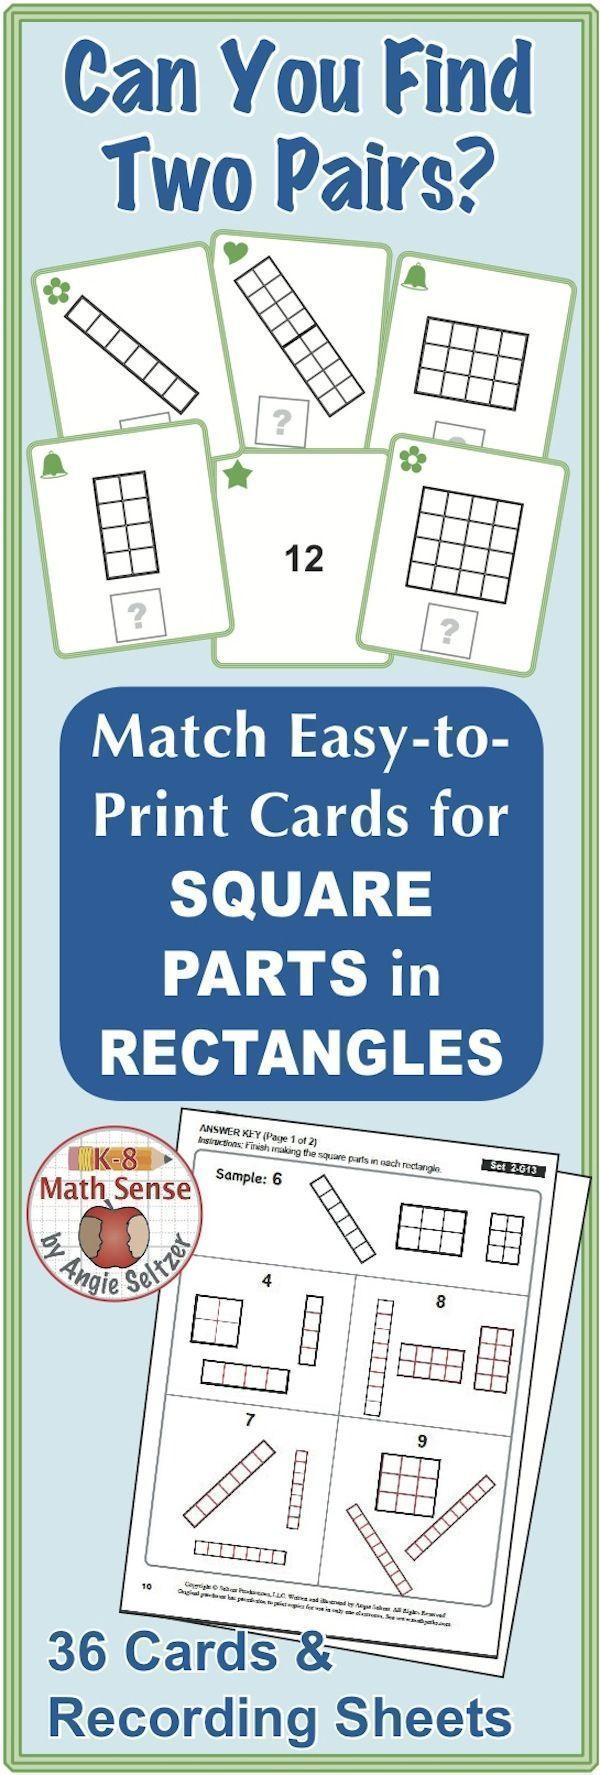 Multi-Match Game Cards 2G: Square Parts in Rectangles | Activities ...